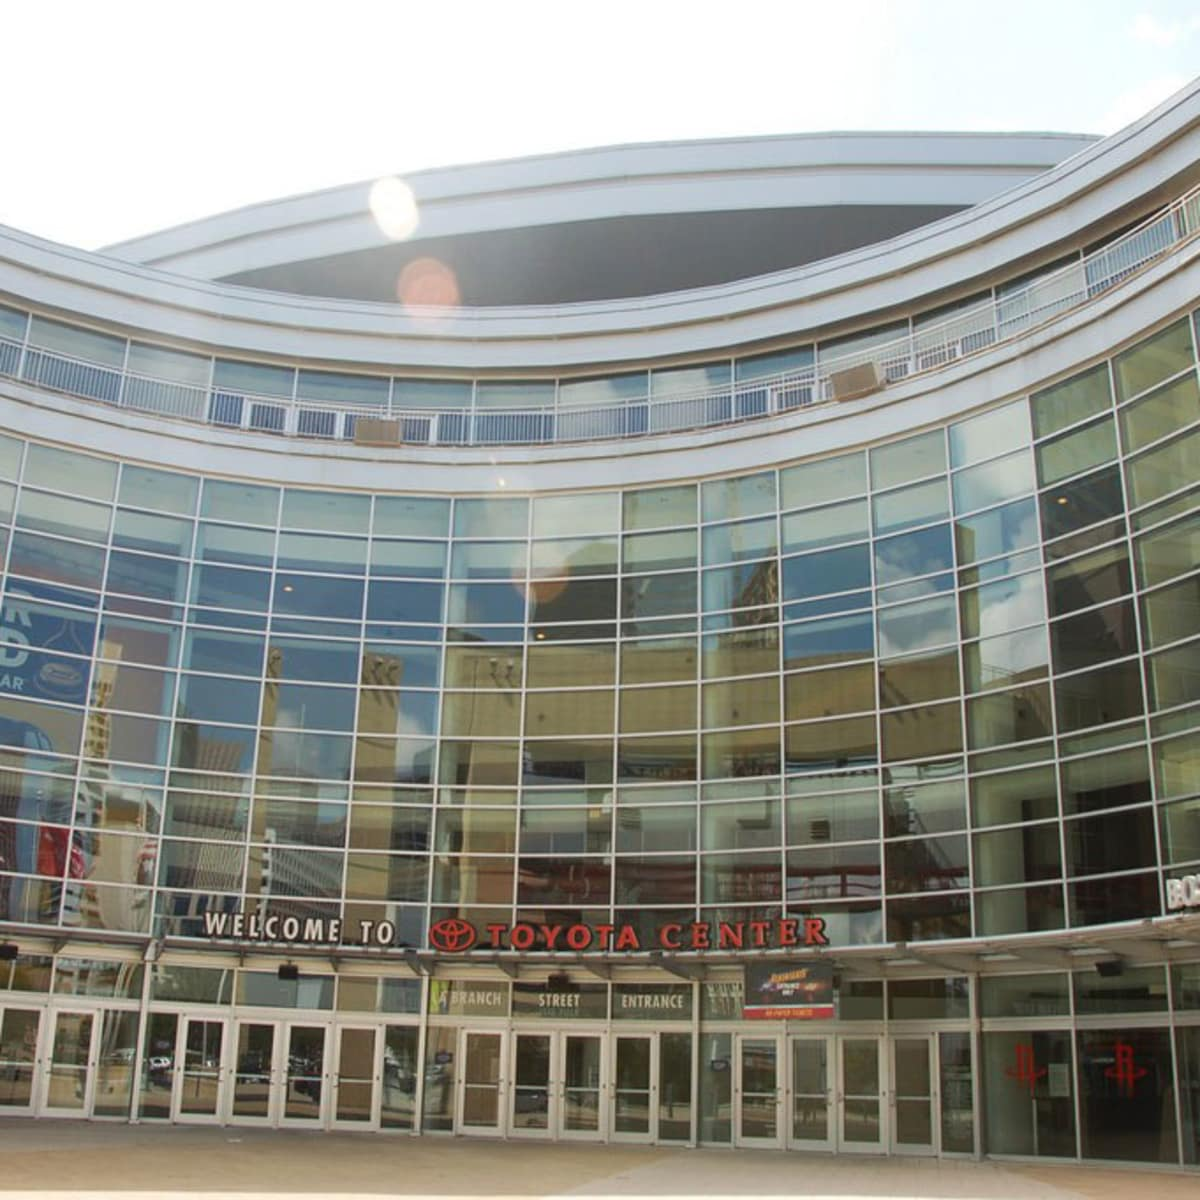 Places-A&E-Toyota Center-exterior-1